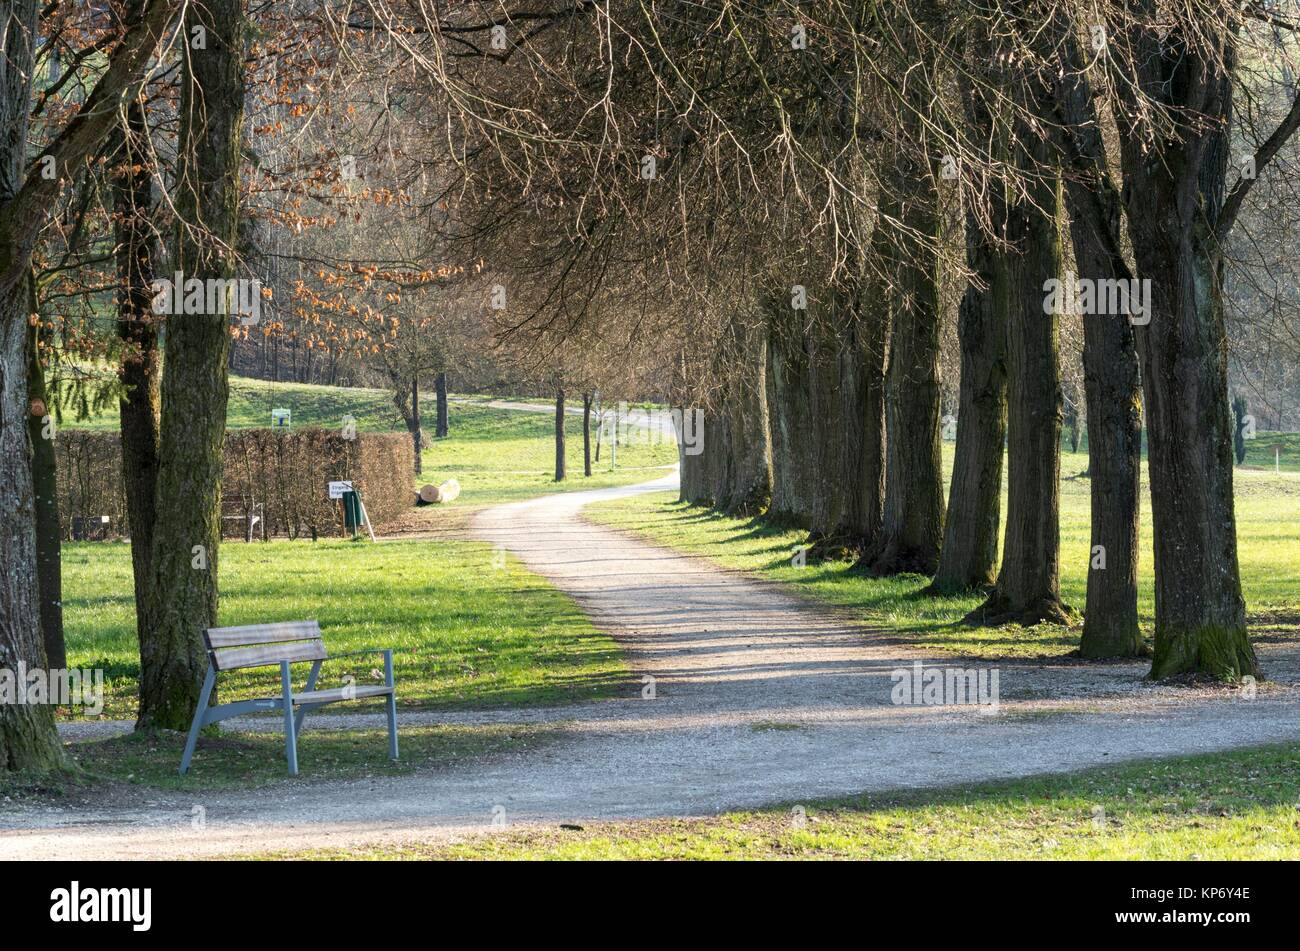 Botanica Park Recreational Area in Early Spring, Bad Schallerbach, Austria - Stock Image